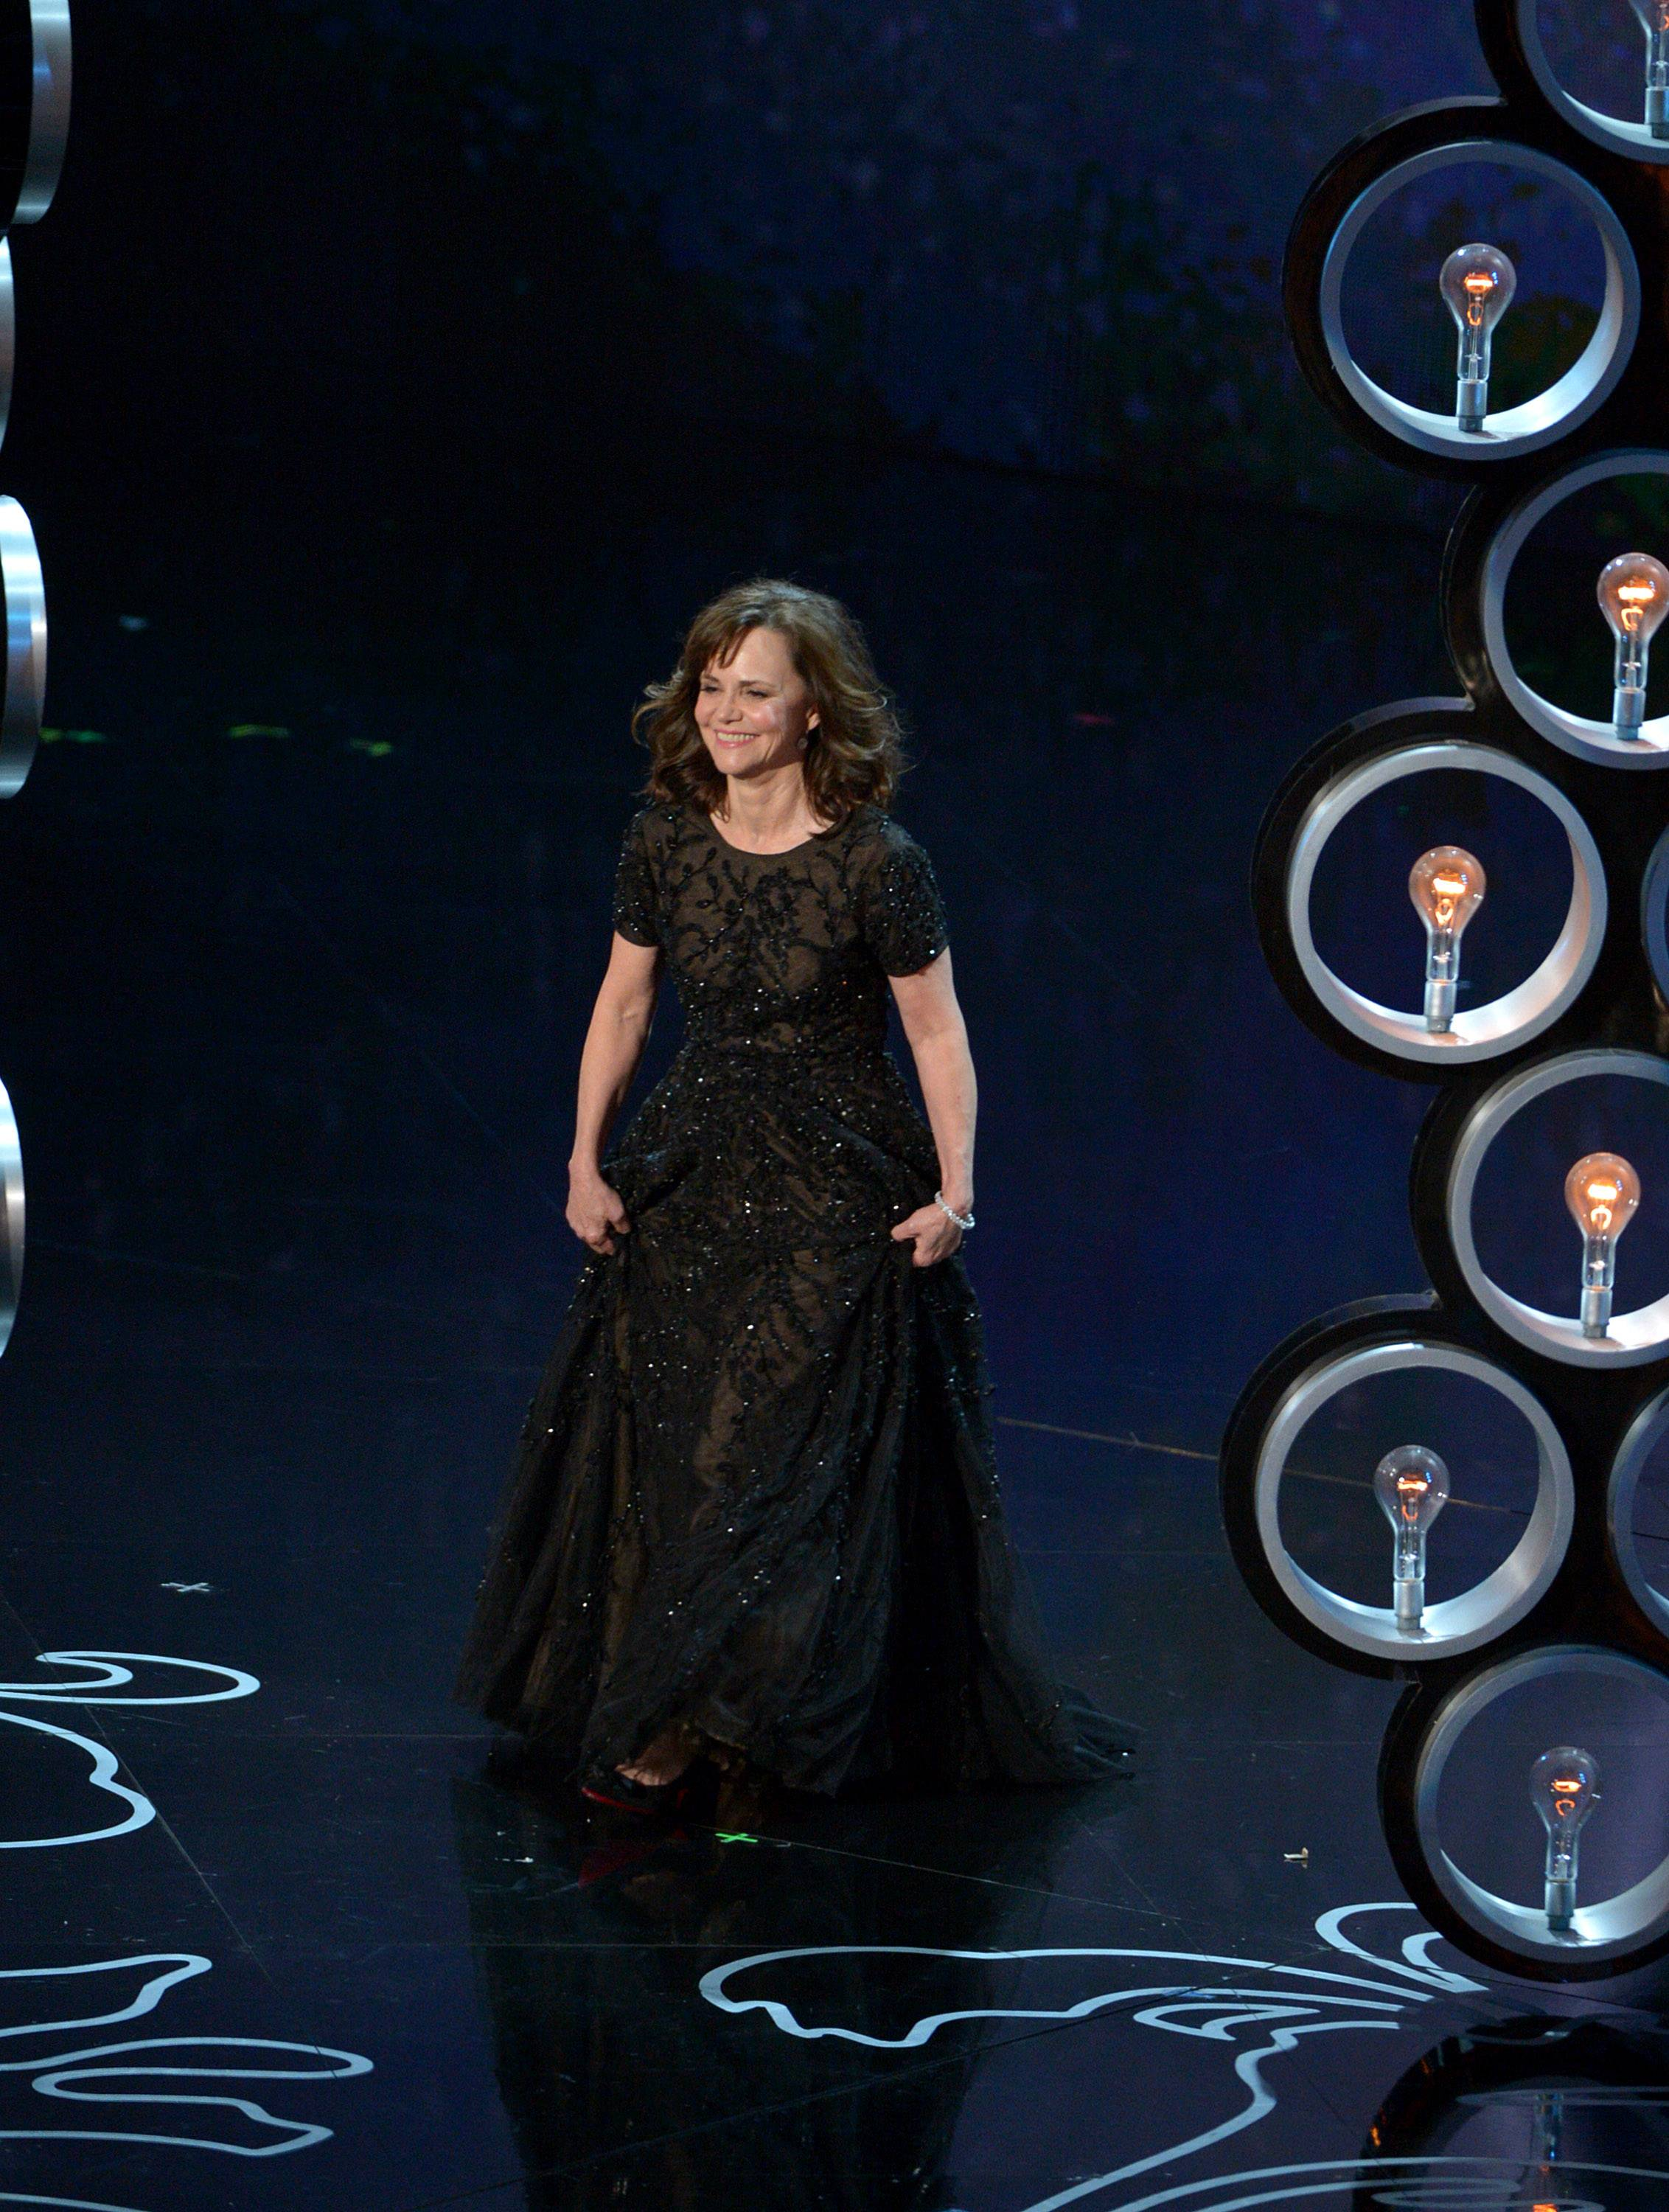 Sally Field walks on stage during the Oscars.